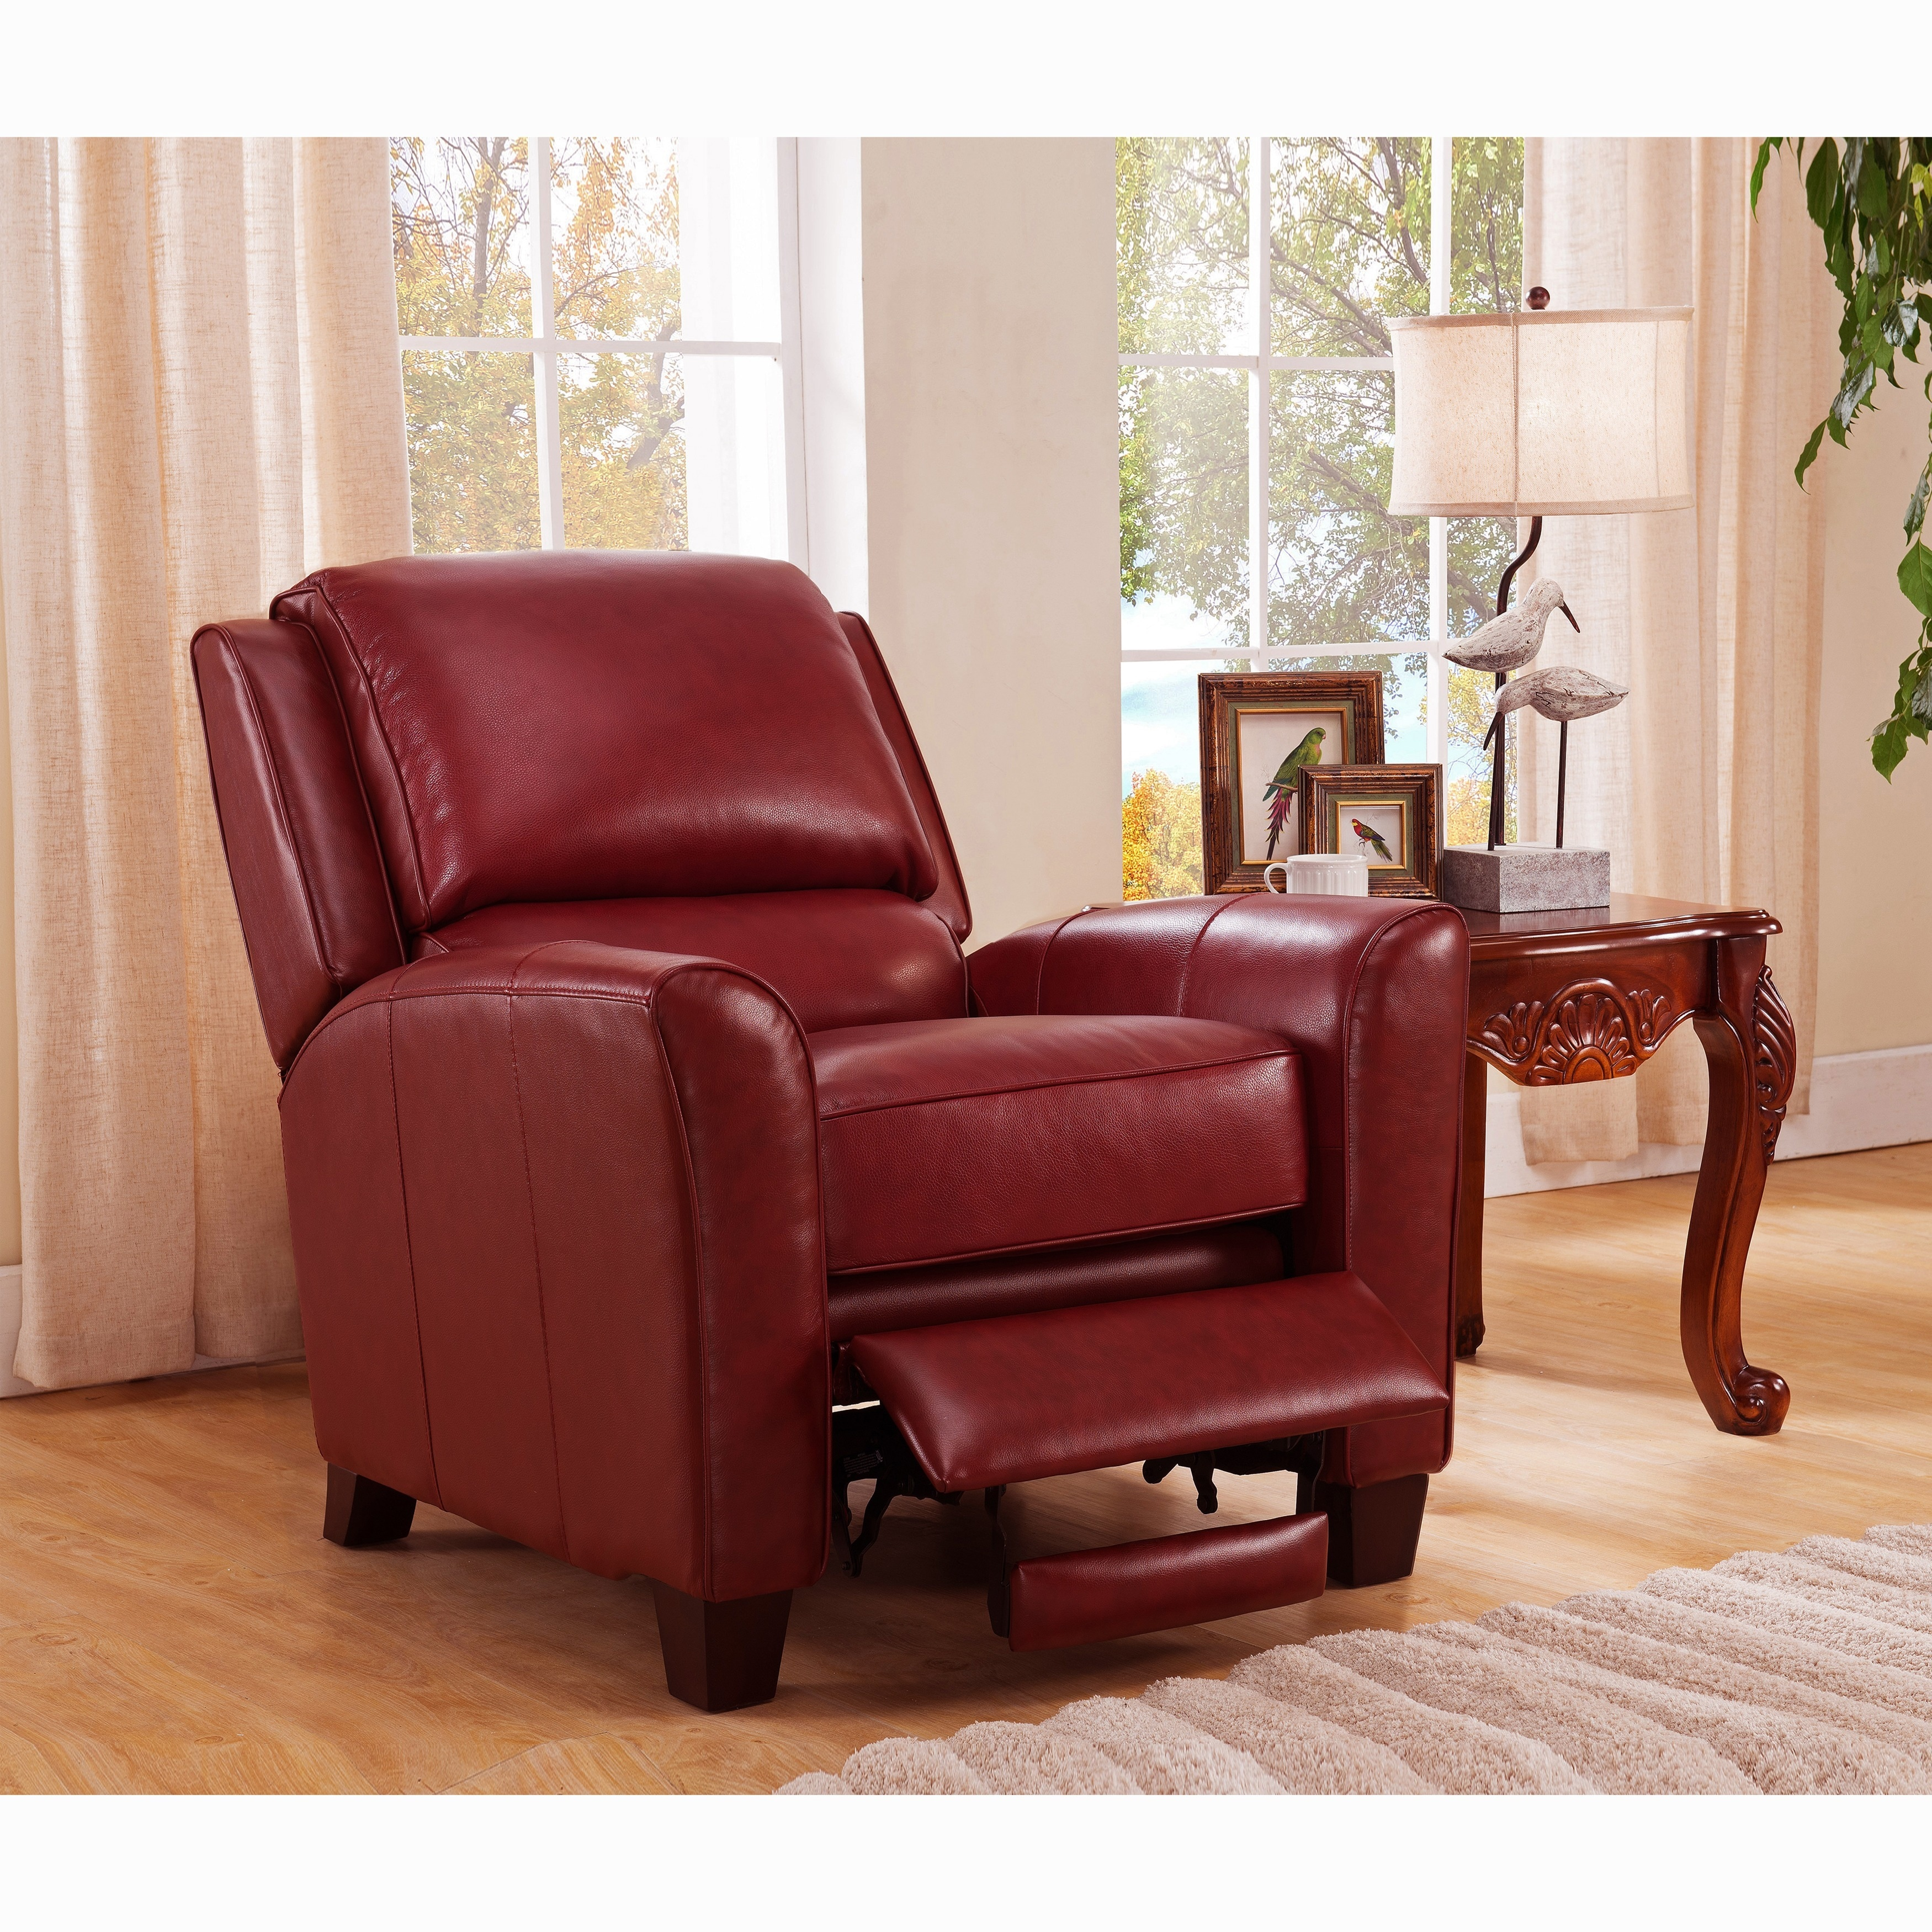 Carnegie Crimson Red Premium Top Grain Leather Recliner Chair On Free Shipping Today 10858753